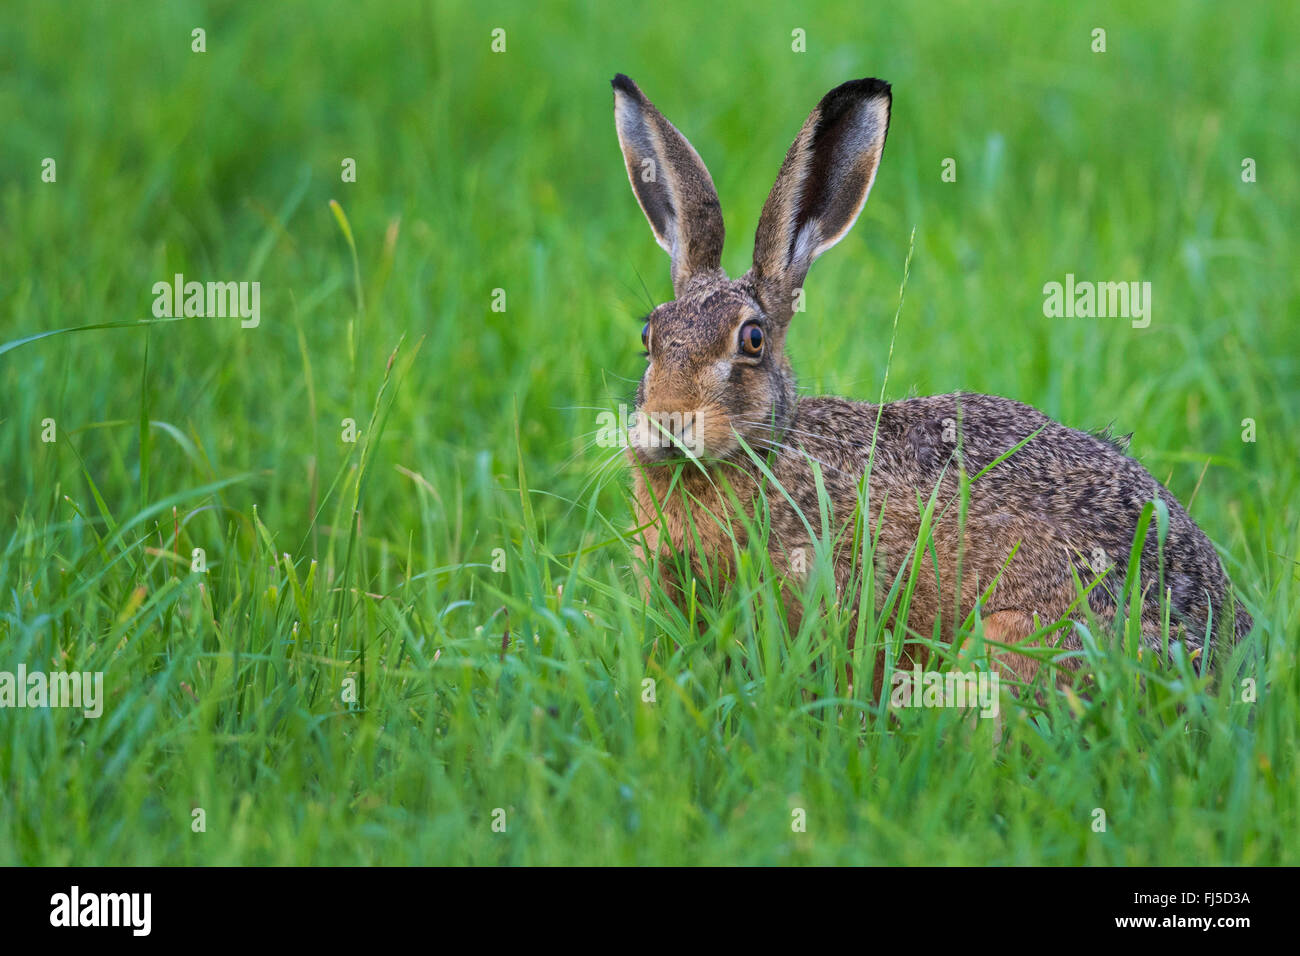 European hare, Brown hare (Lepus europaeus), in a meadow, Germany, Lower Saxony - Stock Image